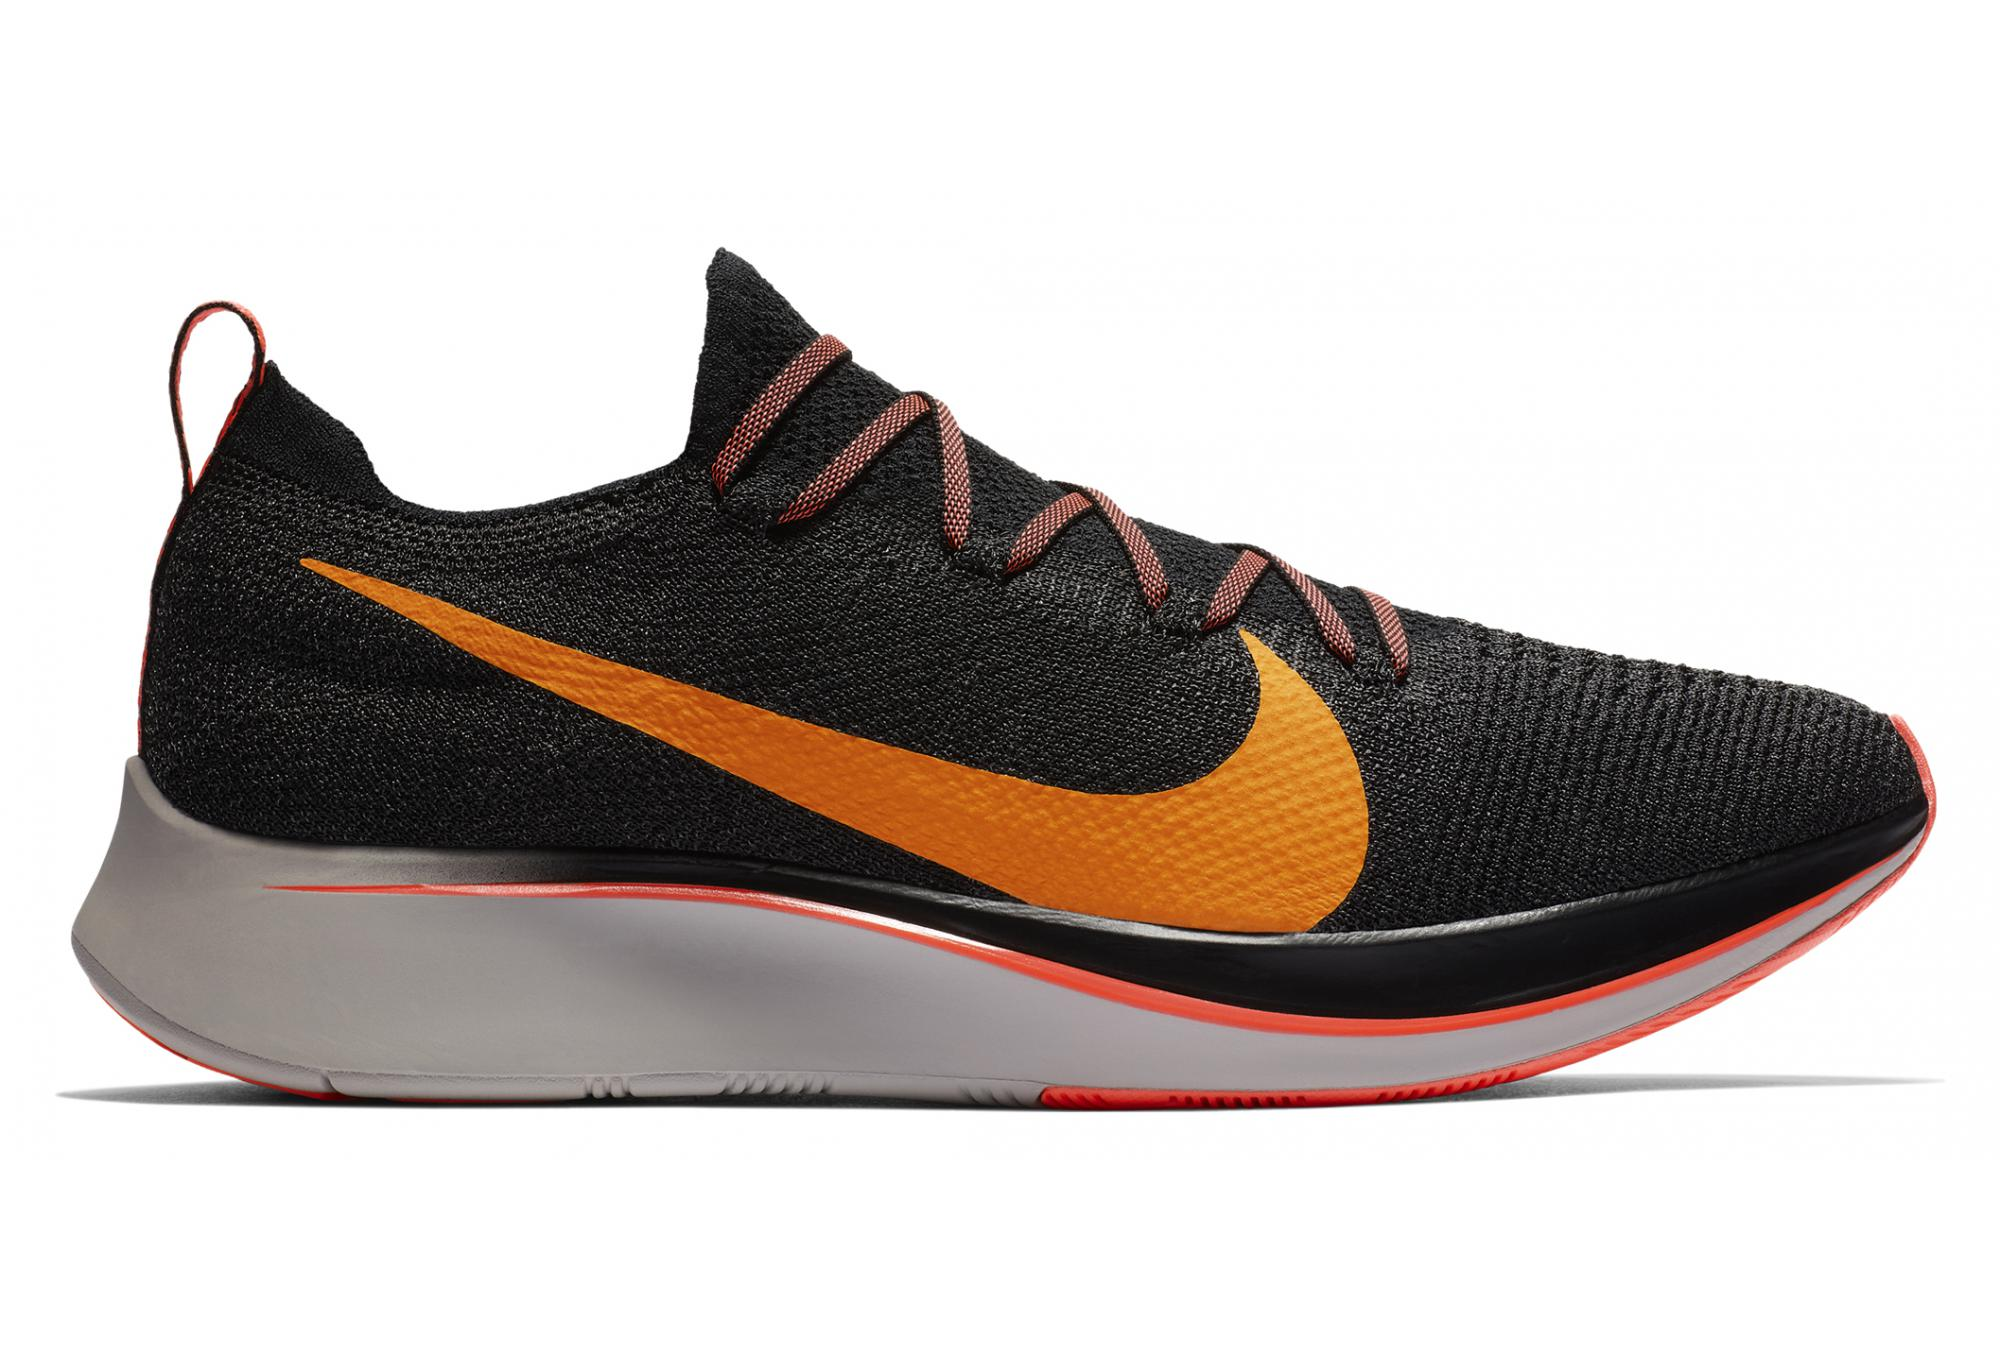 5ad27b19b8da85 Nike Zoom Fly Flyknit Shoes Black Orange Men